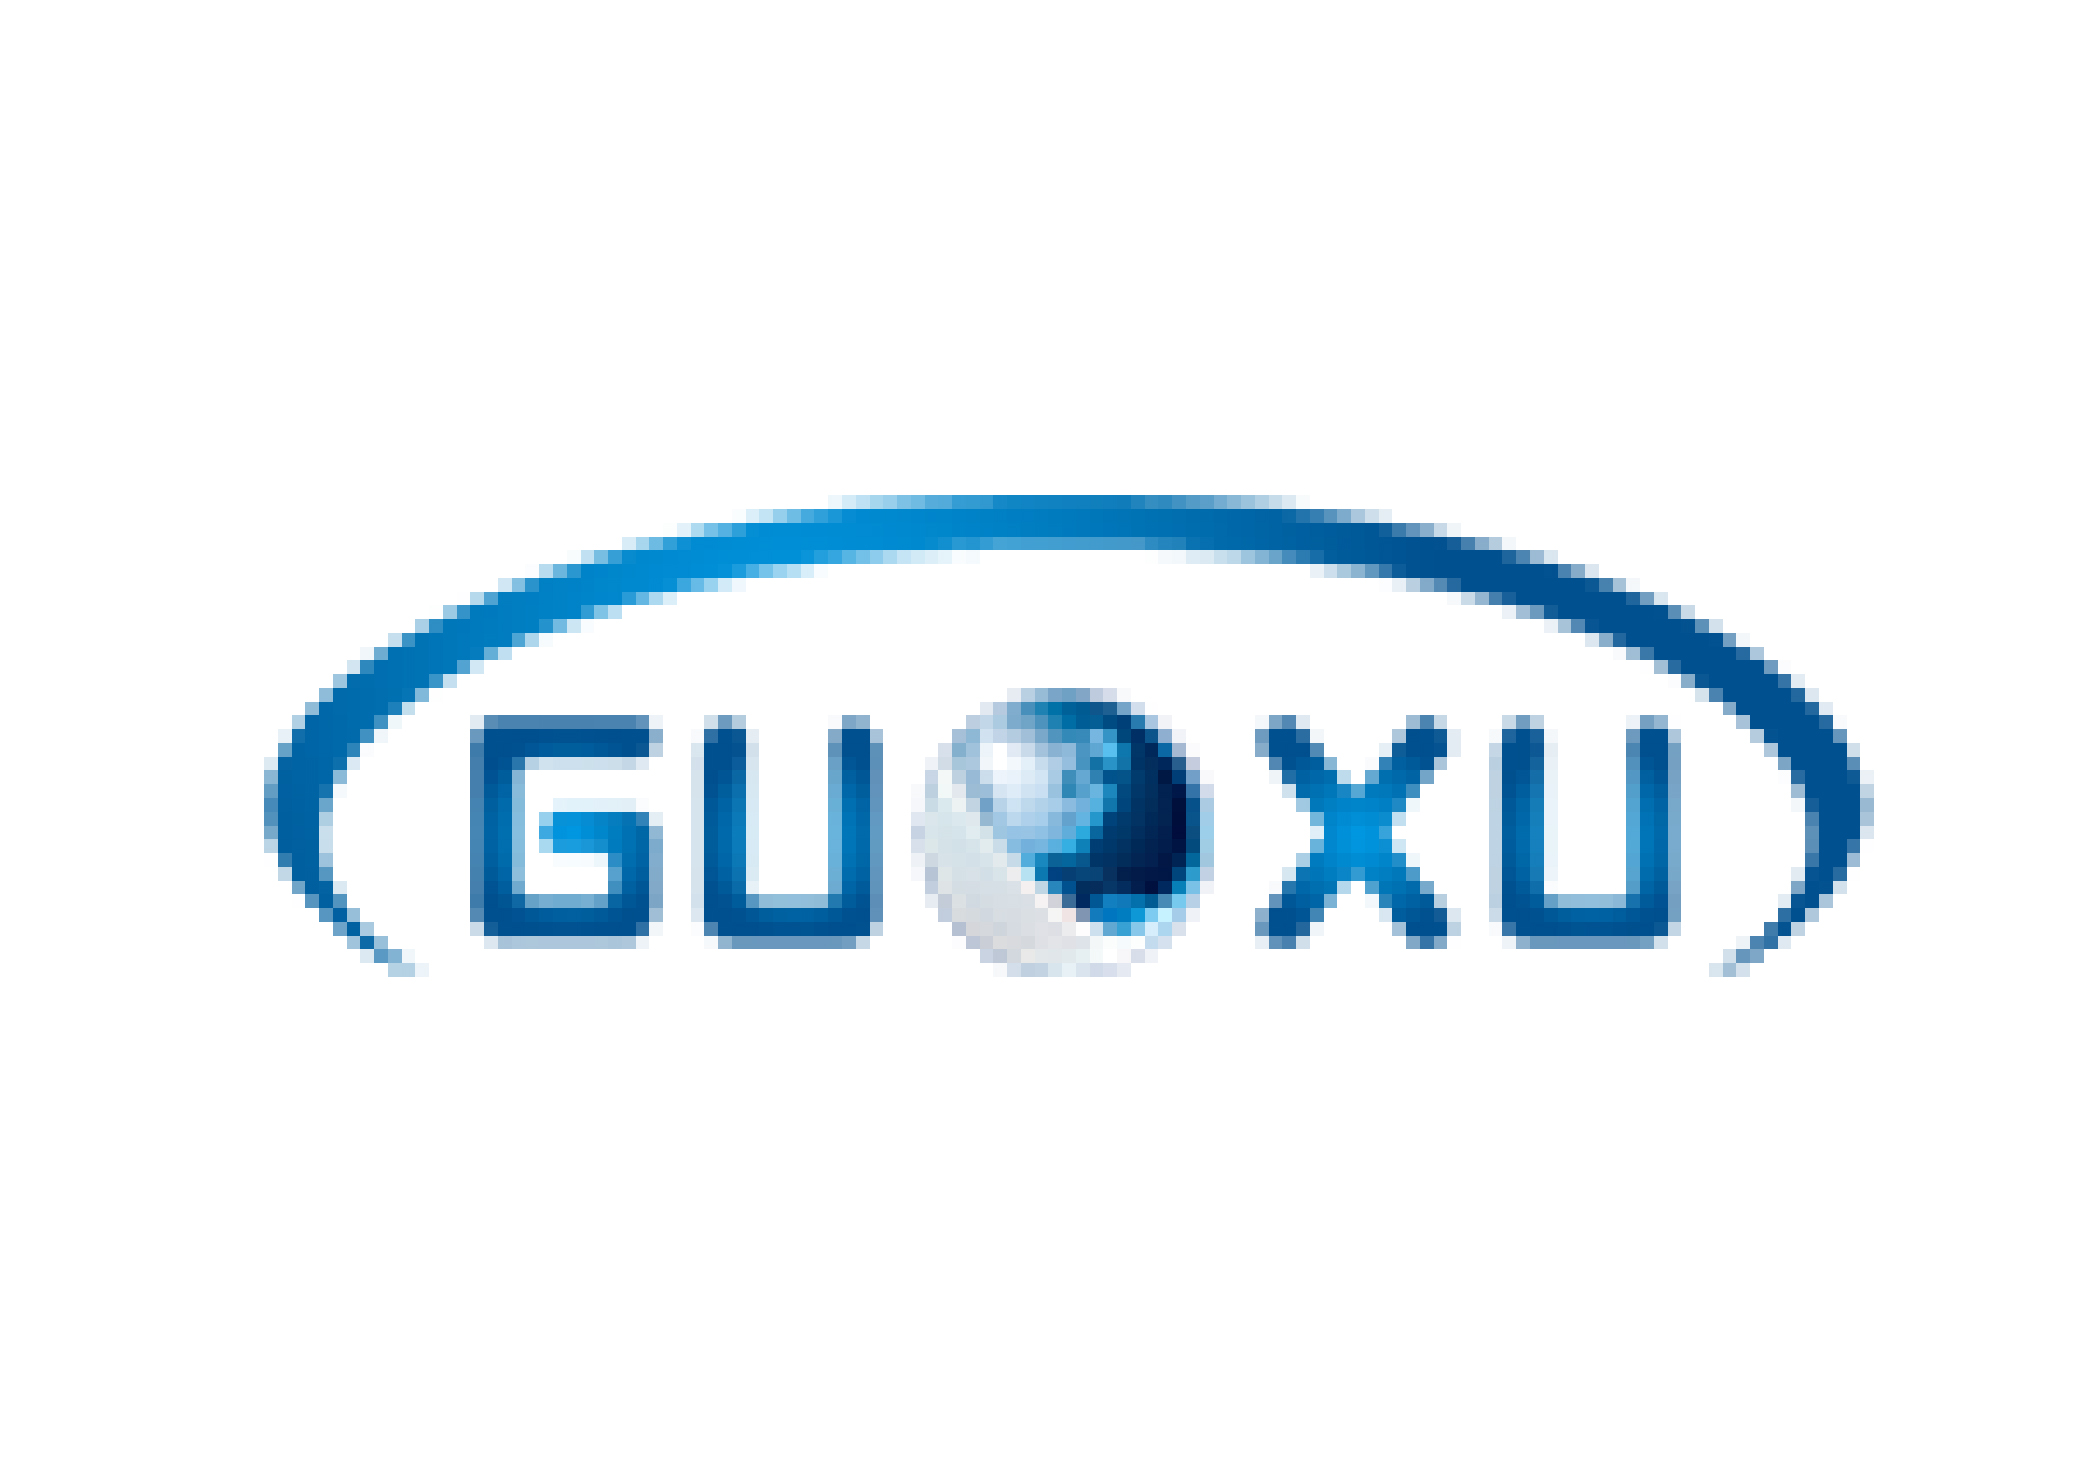 Guoxu Network Technology Co., Ltd